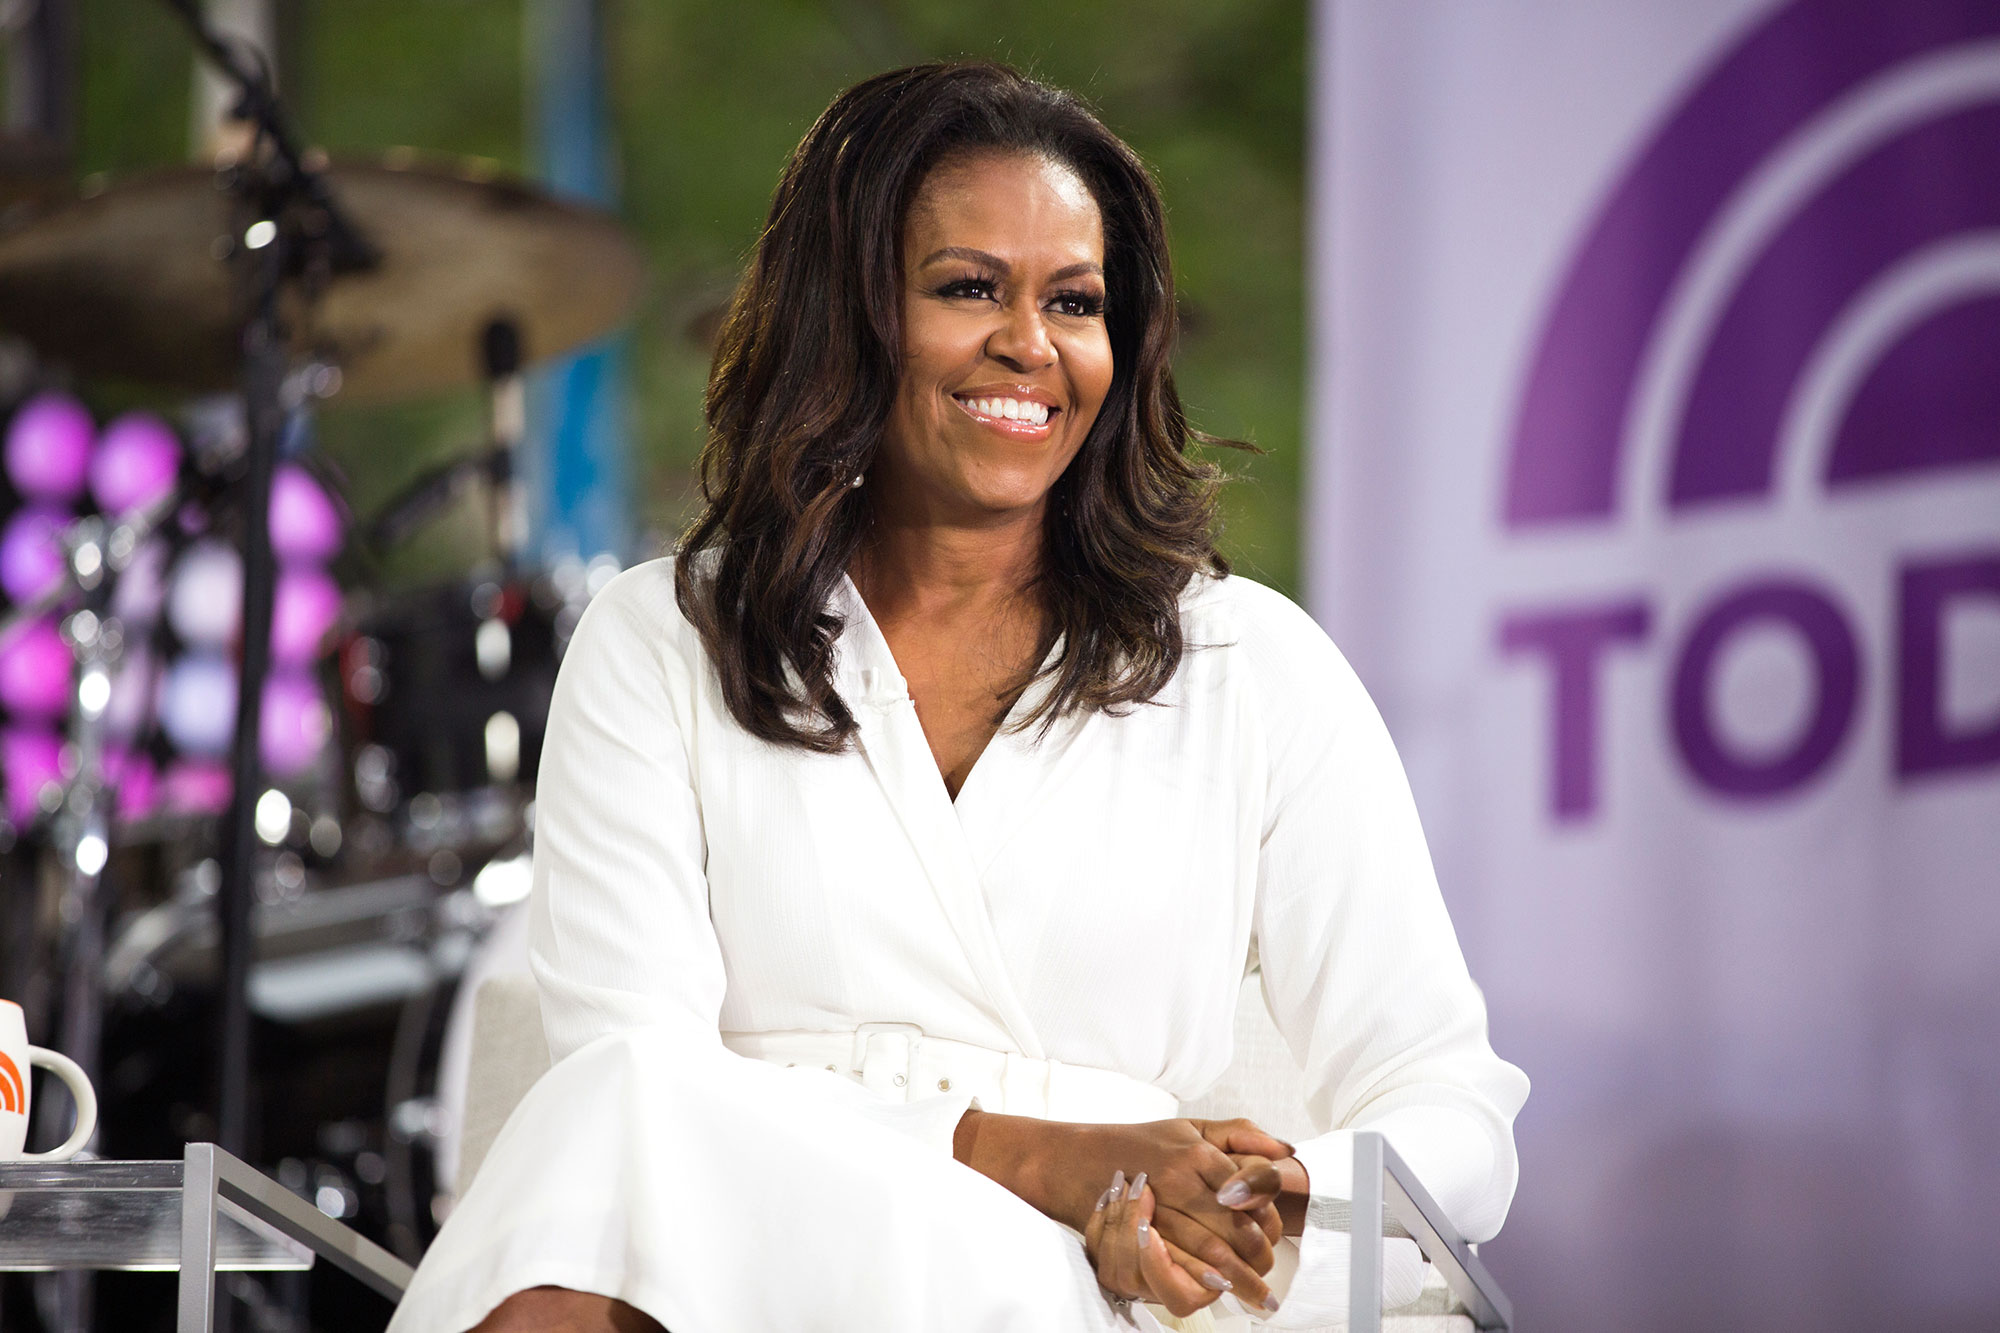 """Michelle Obama - The former first lady and 44th president Barack Obama used IVF to conceive their daughters Malia and Sasha. ''We had one pregnancy test come back positive, which caused us both to forget every worry and swoon with joy,"""" the Harvard Law graduate wrote in her memoir Becoming. """"But a couple of weeks later I had a miscarriage, which left me physically uncomfortable and cratered any optimism we felt."""